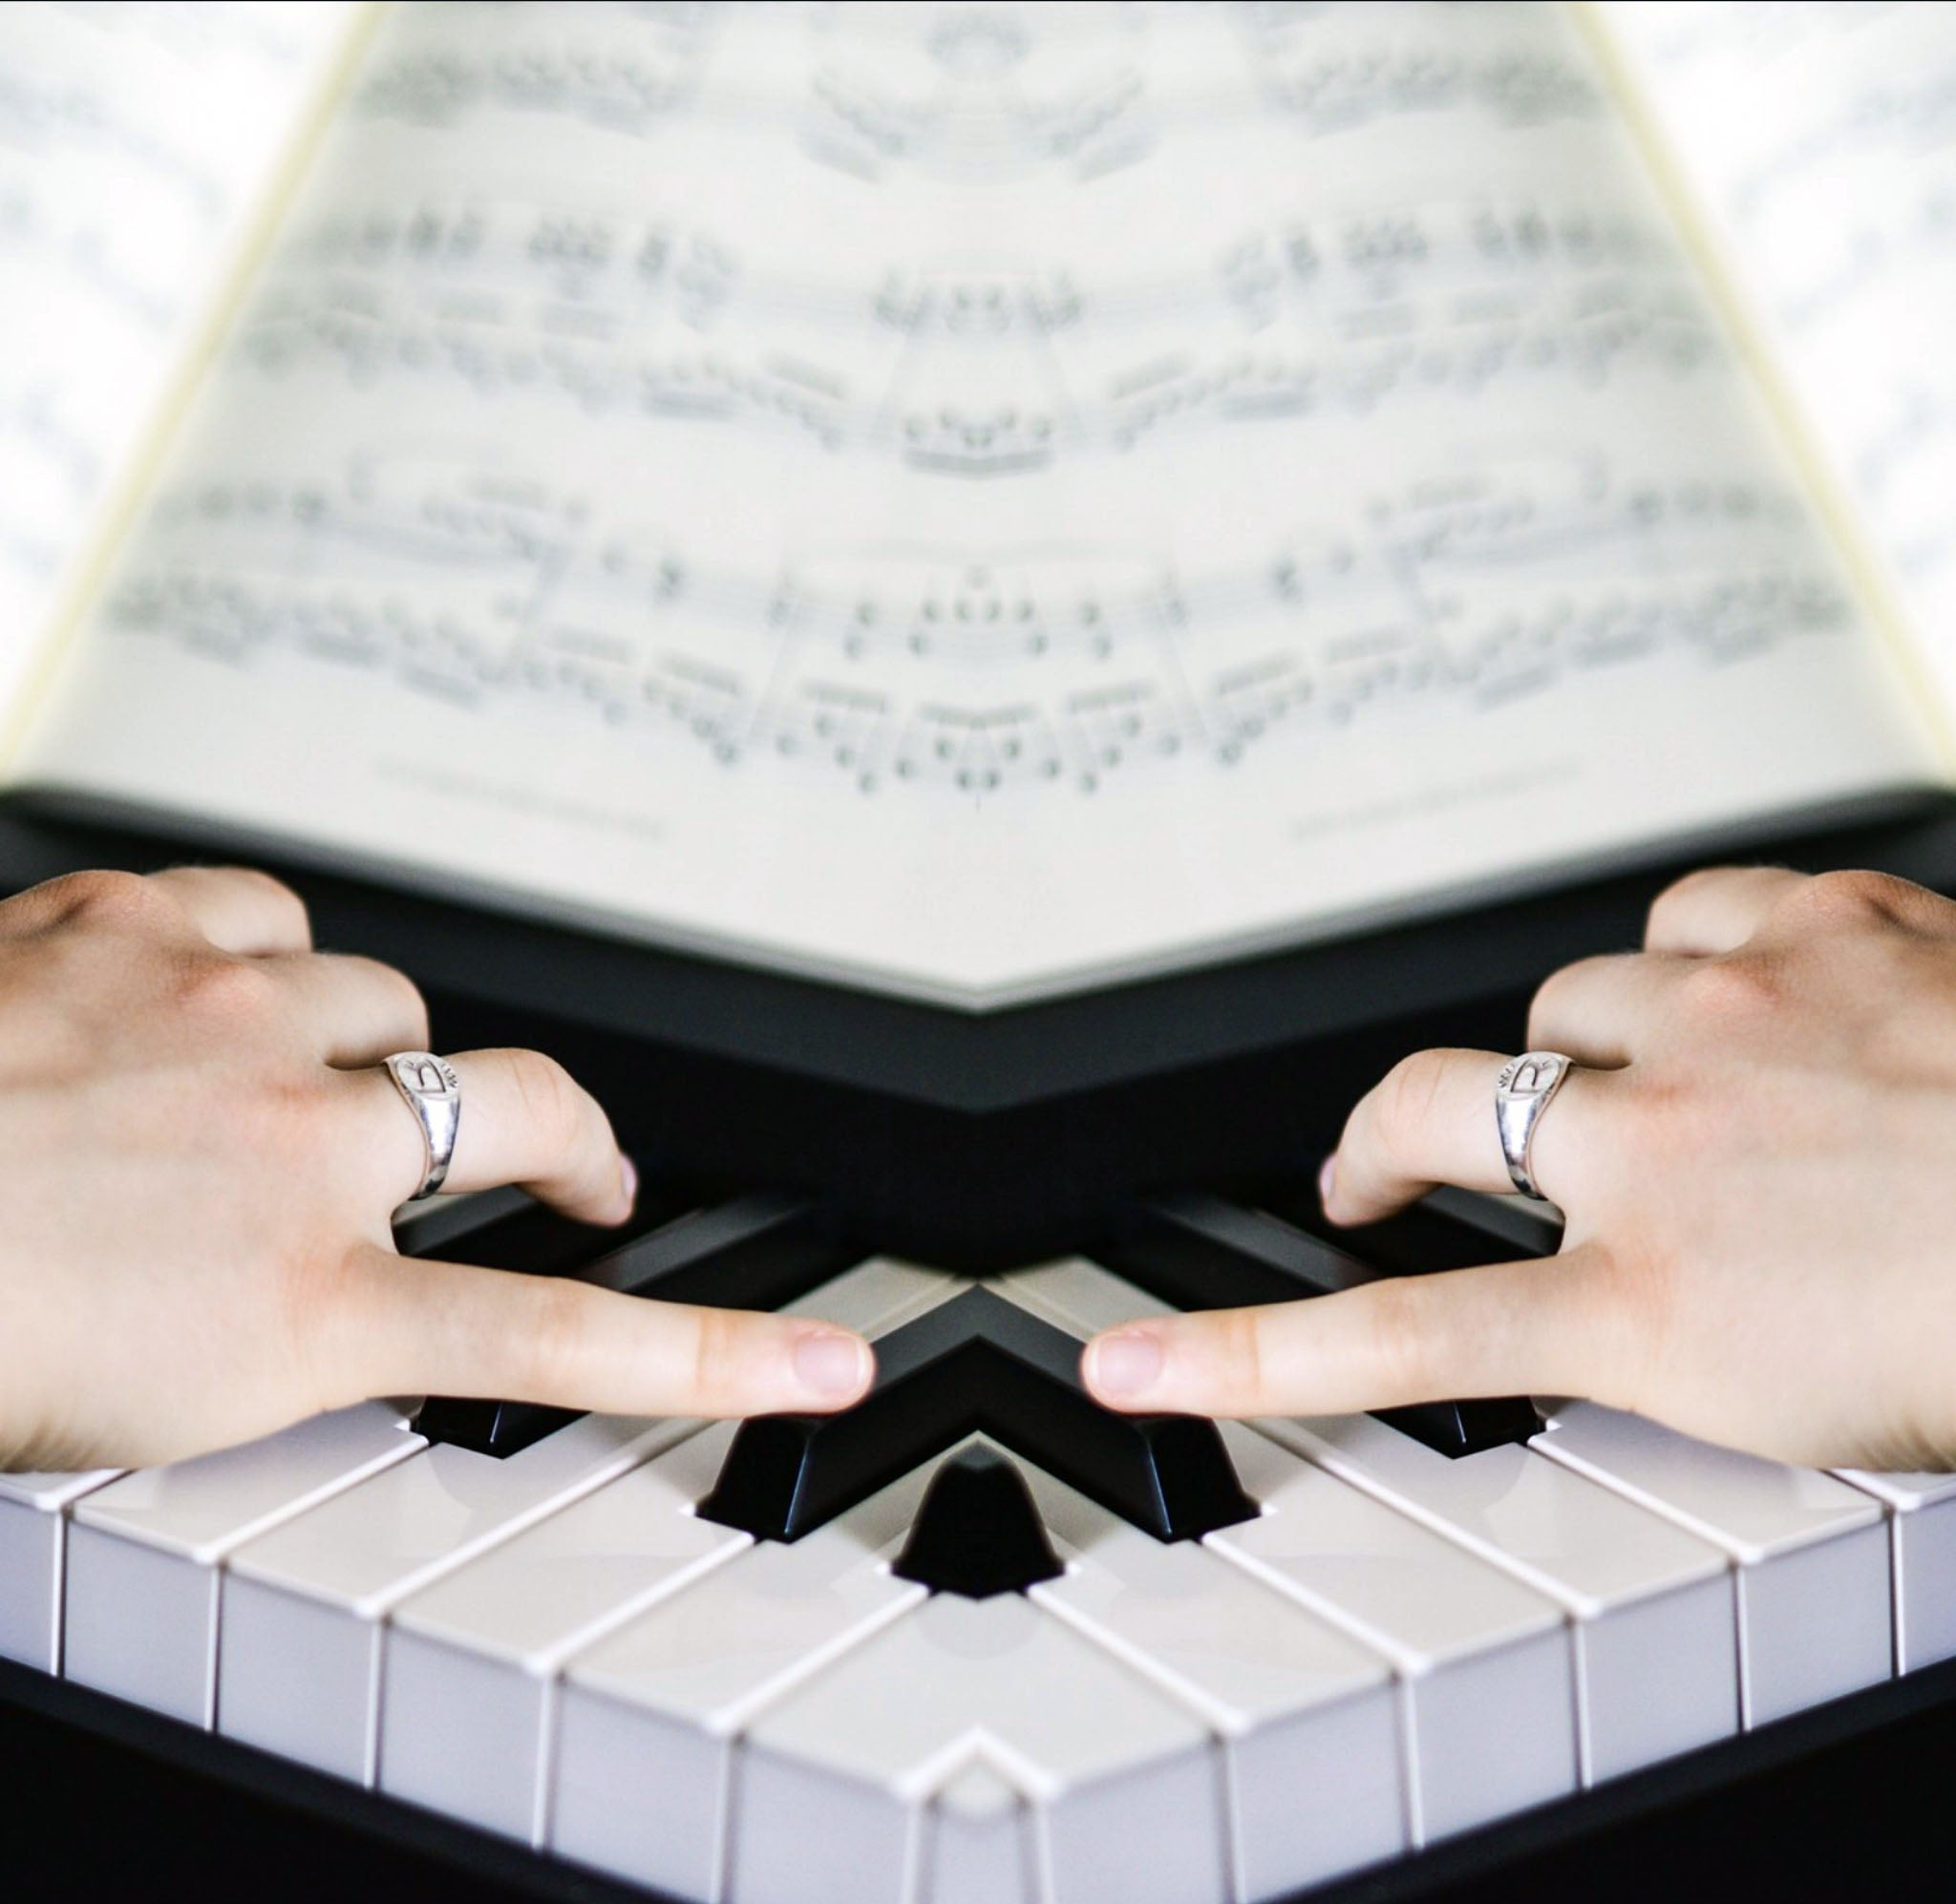 How To Make Chord Progressions Head Image Of Mirrored Piano